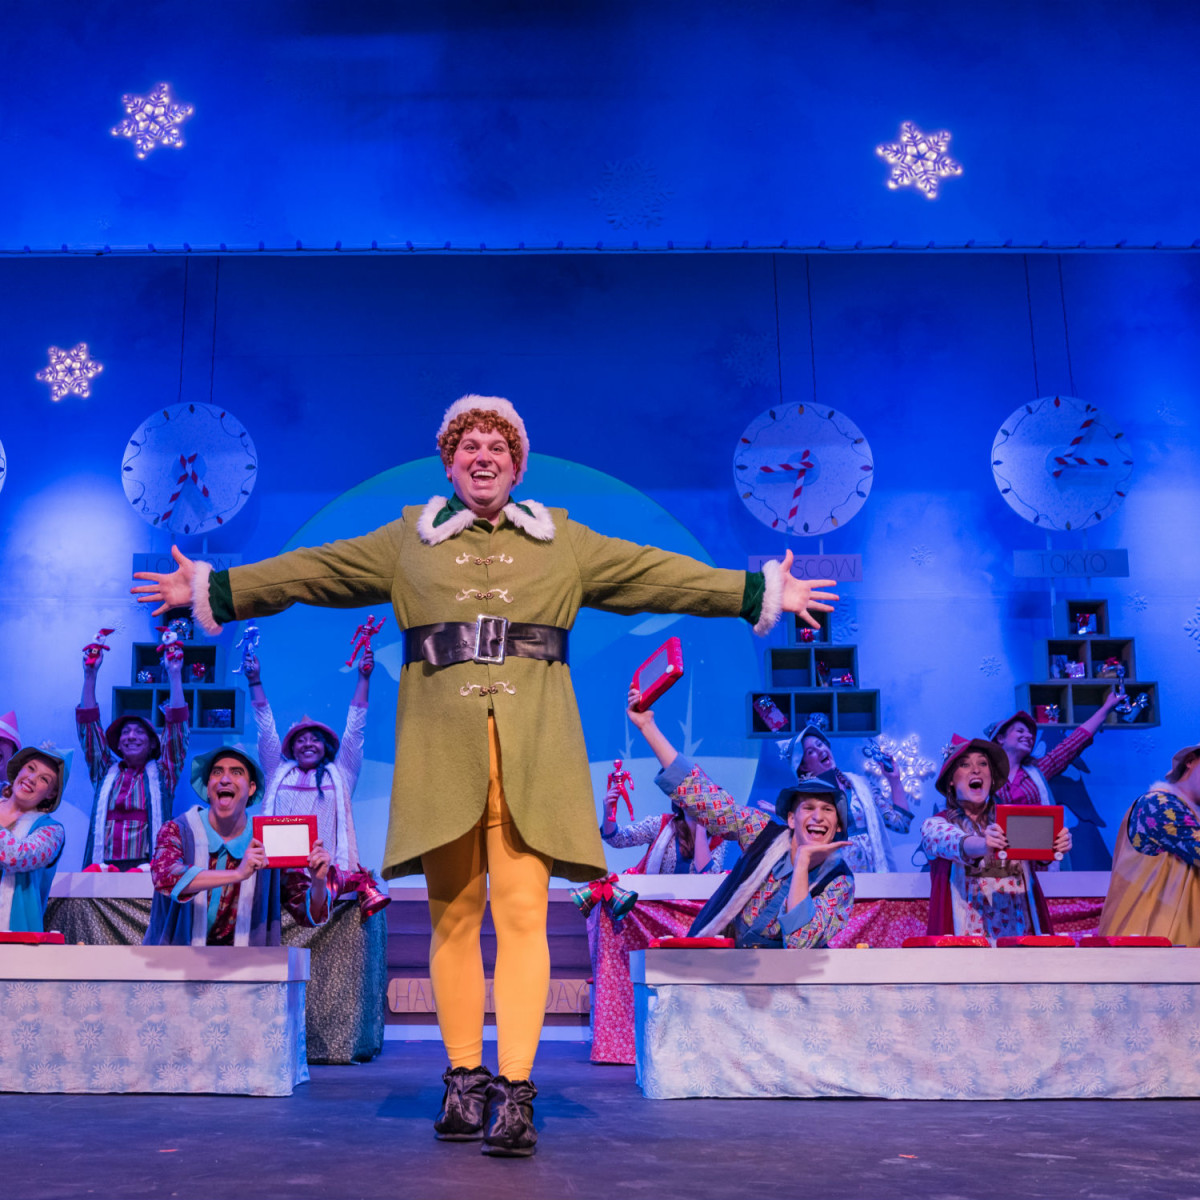 The Public Theatre of San Antonio presents Elf The Musical